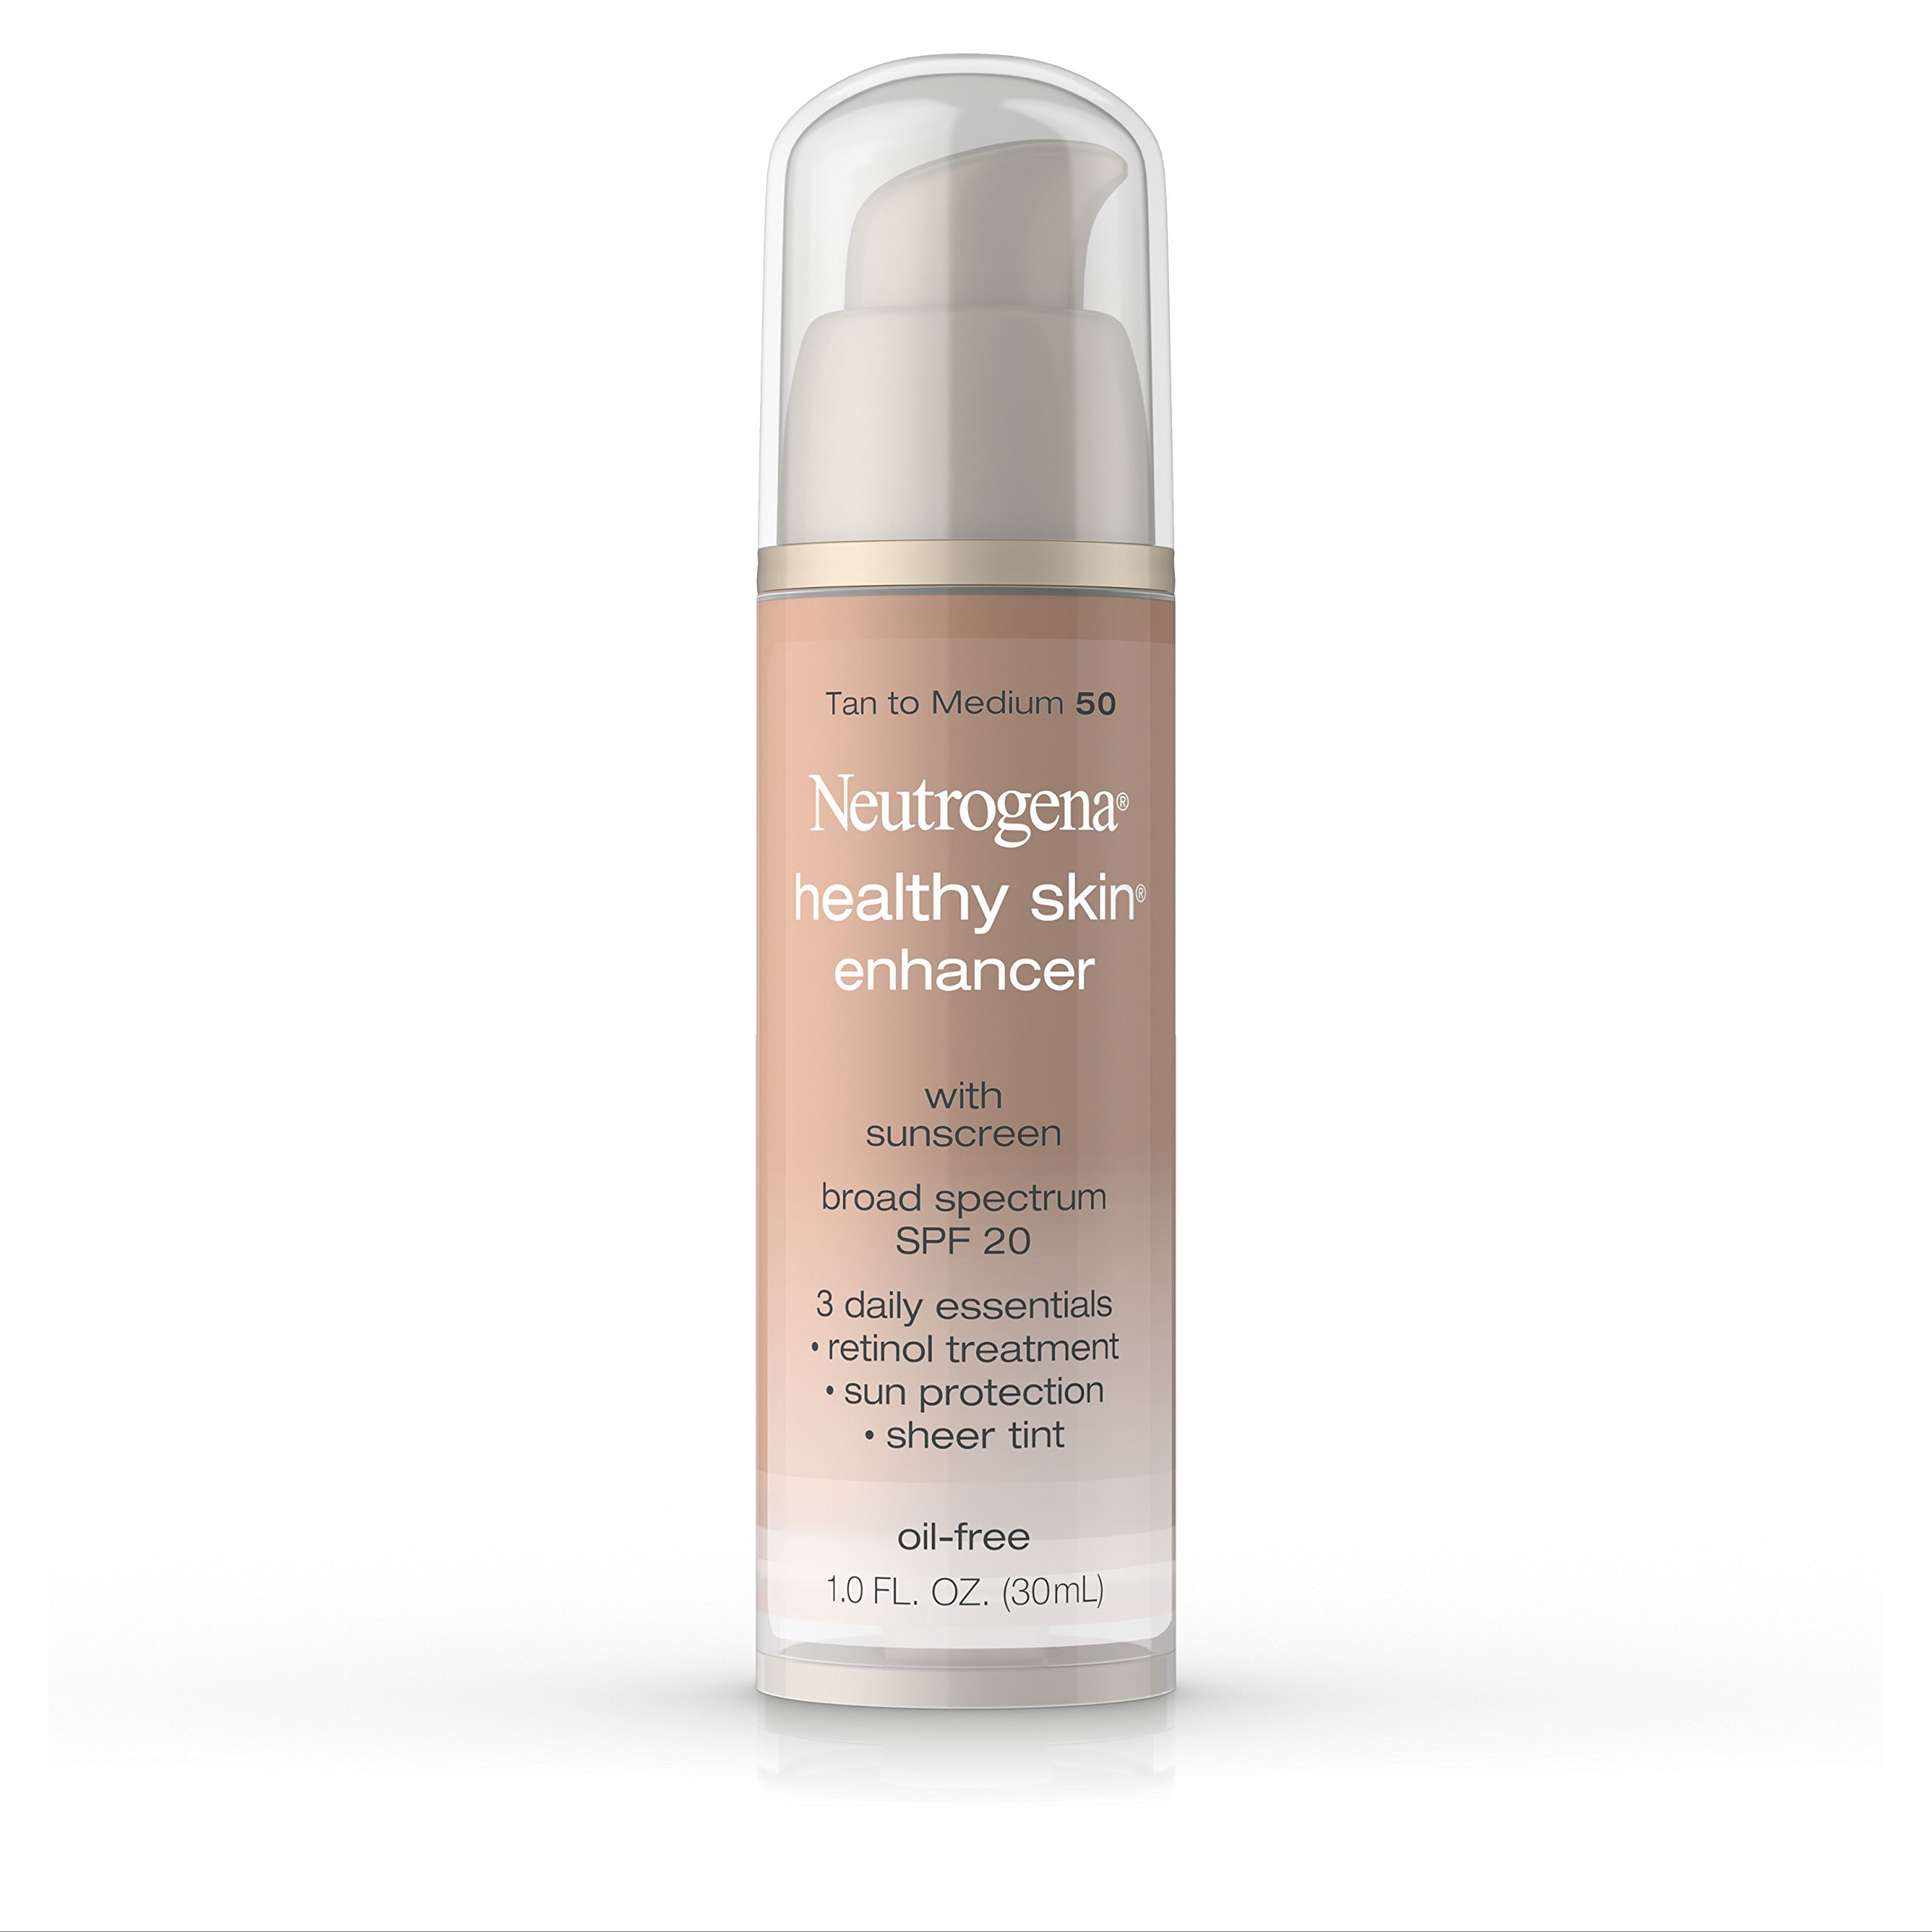 Neutrogena Healthy Skin Enhancer Broad Spectrum Spf 20, Tan To Medium 50, 1 Oz. by Neutrogena